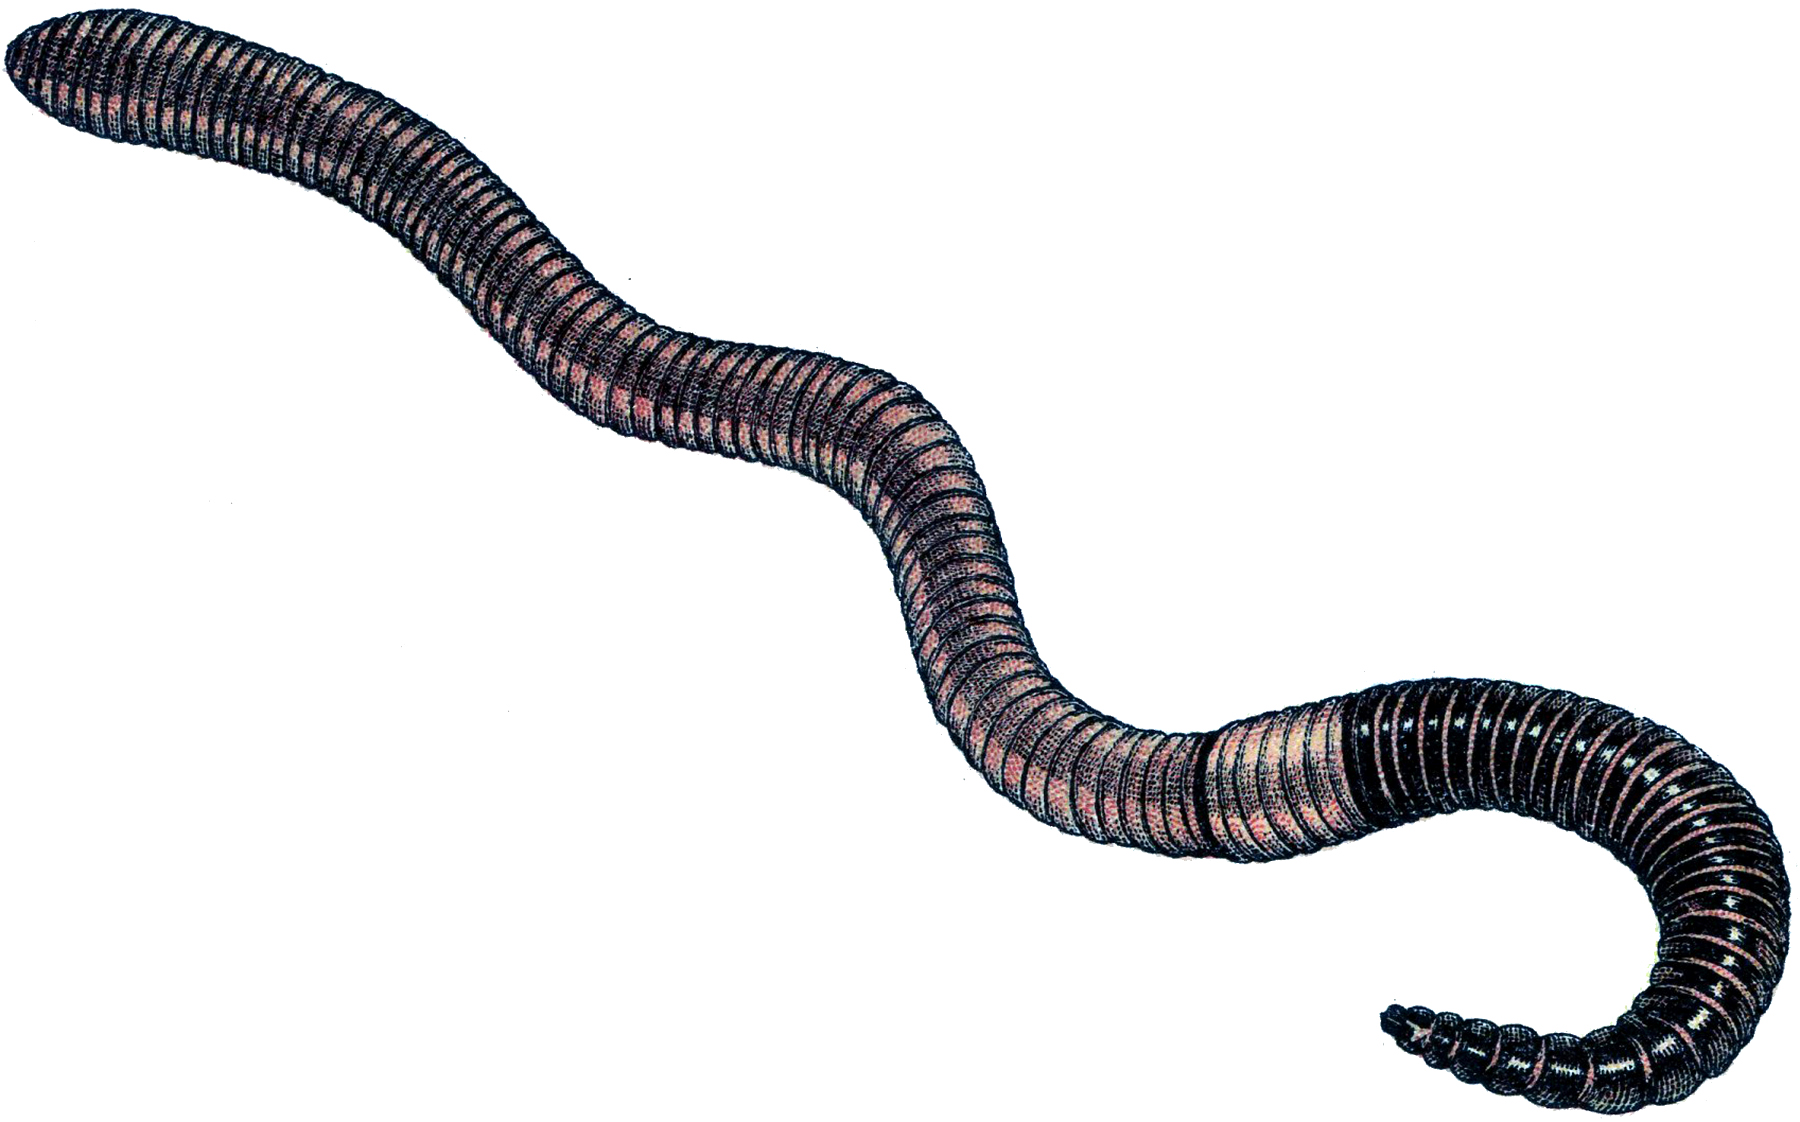 Image For U0026gt; Clipart Earthworm-Image For u0026gt; Clipart Earthworm-14